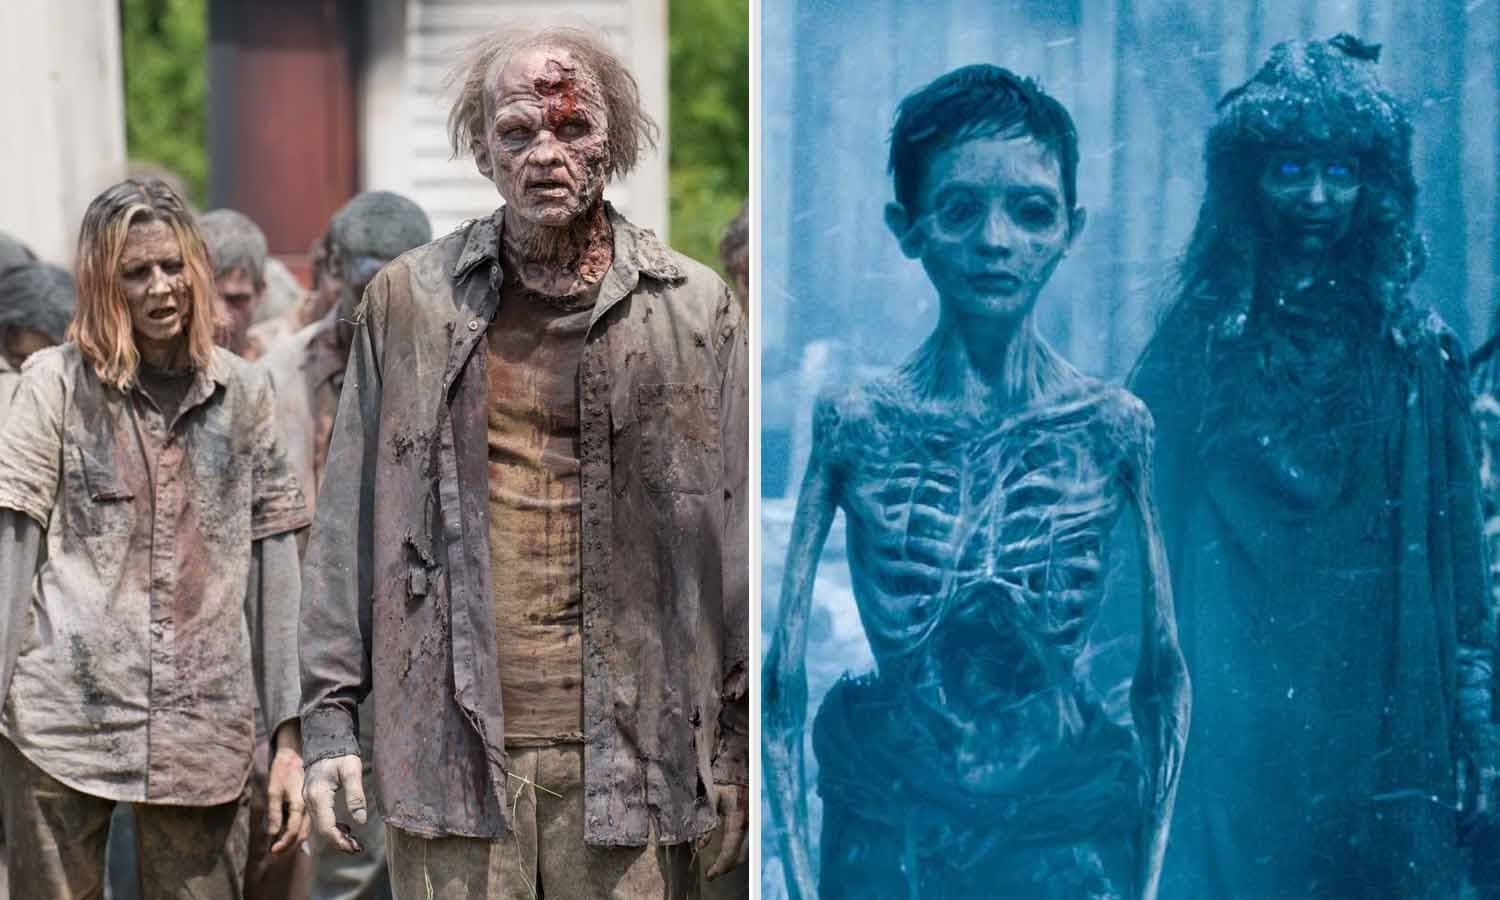 The Walking Dead Passes Game of Thrones as Most Pirated Series of 2018